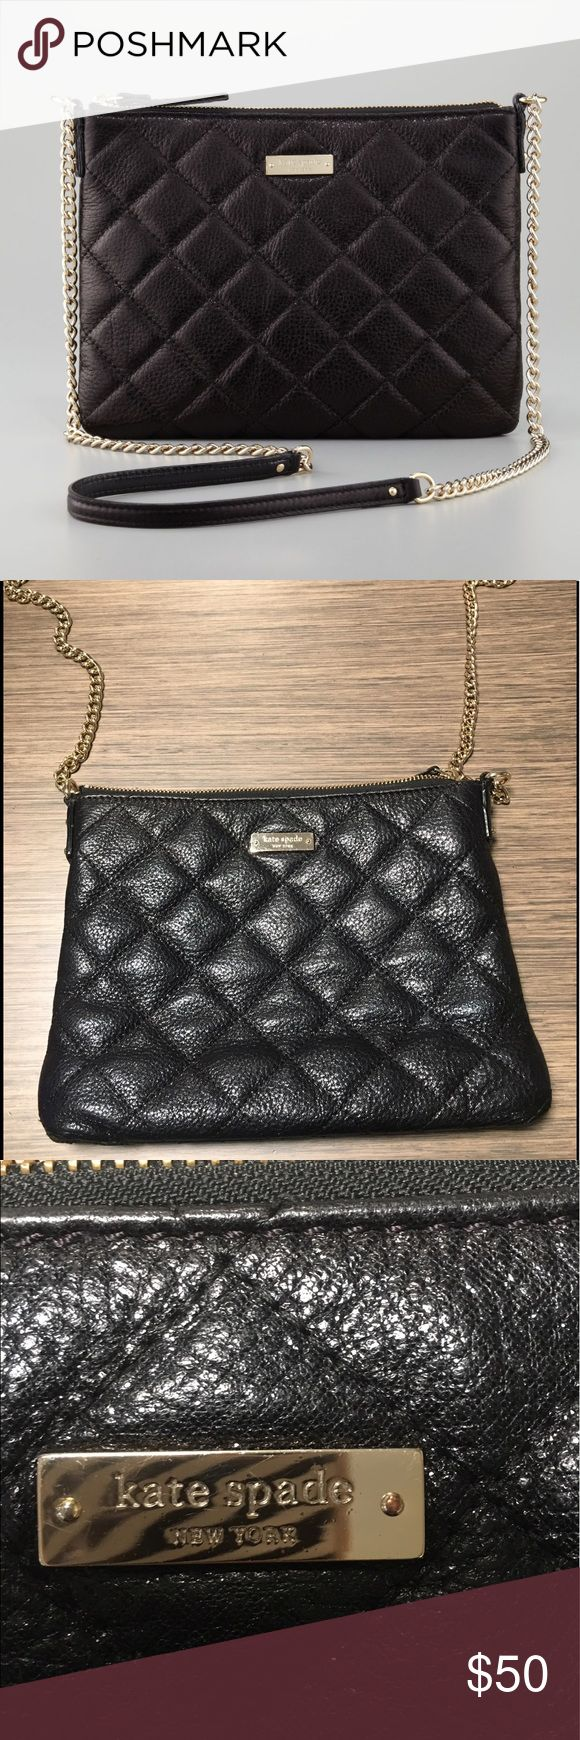 """Kate Spade Gold Coast Ginnie Crossbody In excellent condition, rate 9/10. Black quilted pebbles leather, golden/silver hardware chain, chain and leather strap has 22 1/2 drop, zip top, cream fabric lining, interior has two open pockets and one zip pocket, 8""""H x 10"""" W x 1"""" D kate spade Bags Crossbody Bags"""